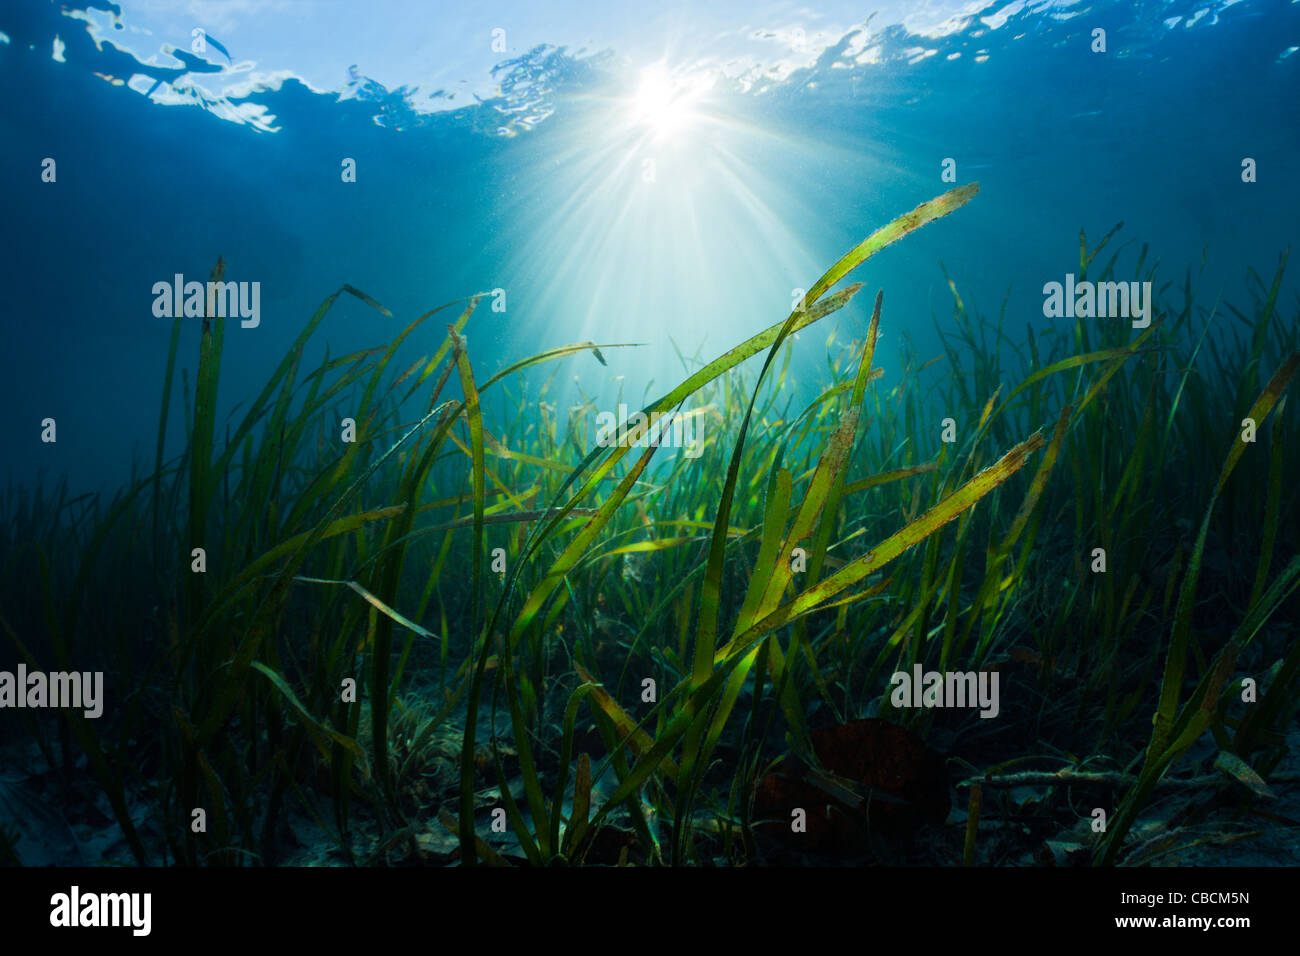 Seagrass Meadows, Cenderawasih Bay, West Papua, Indonesia - Stock Image